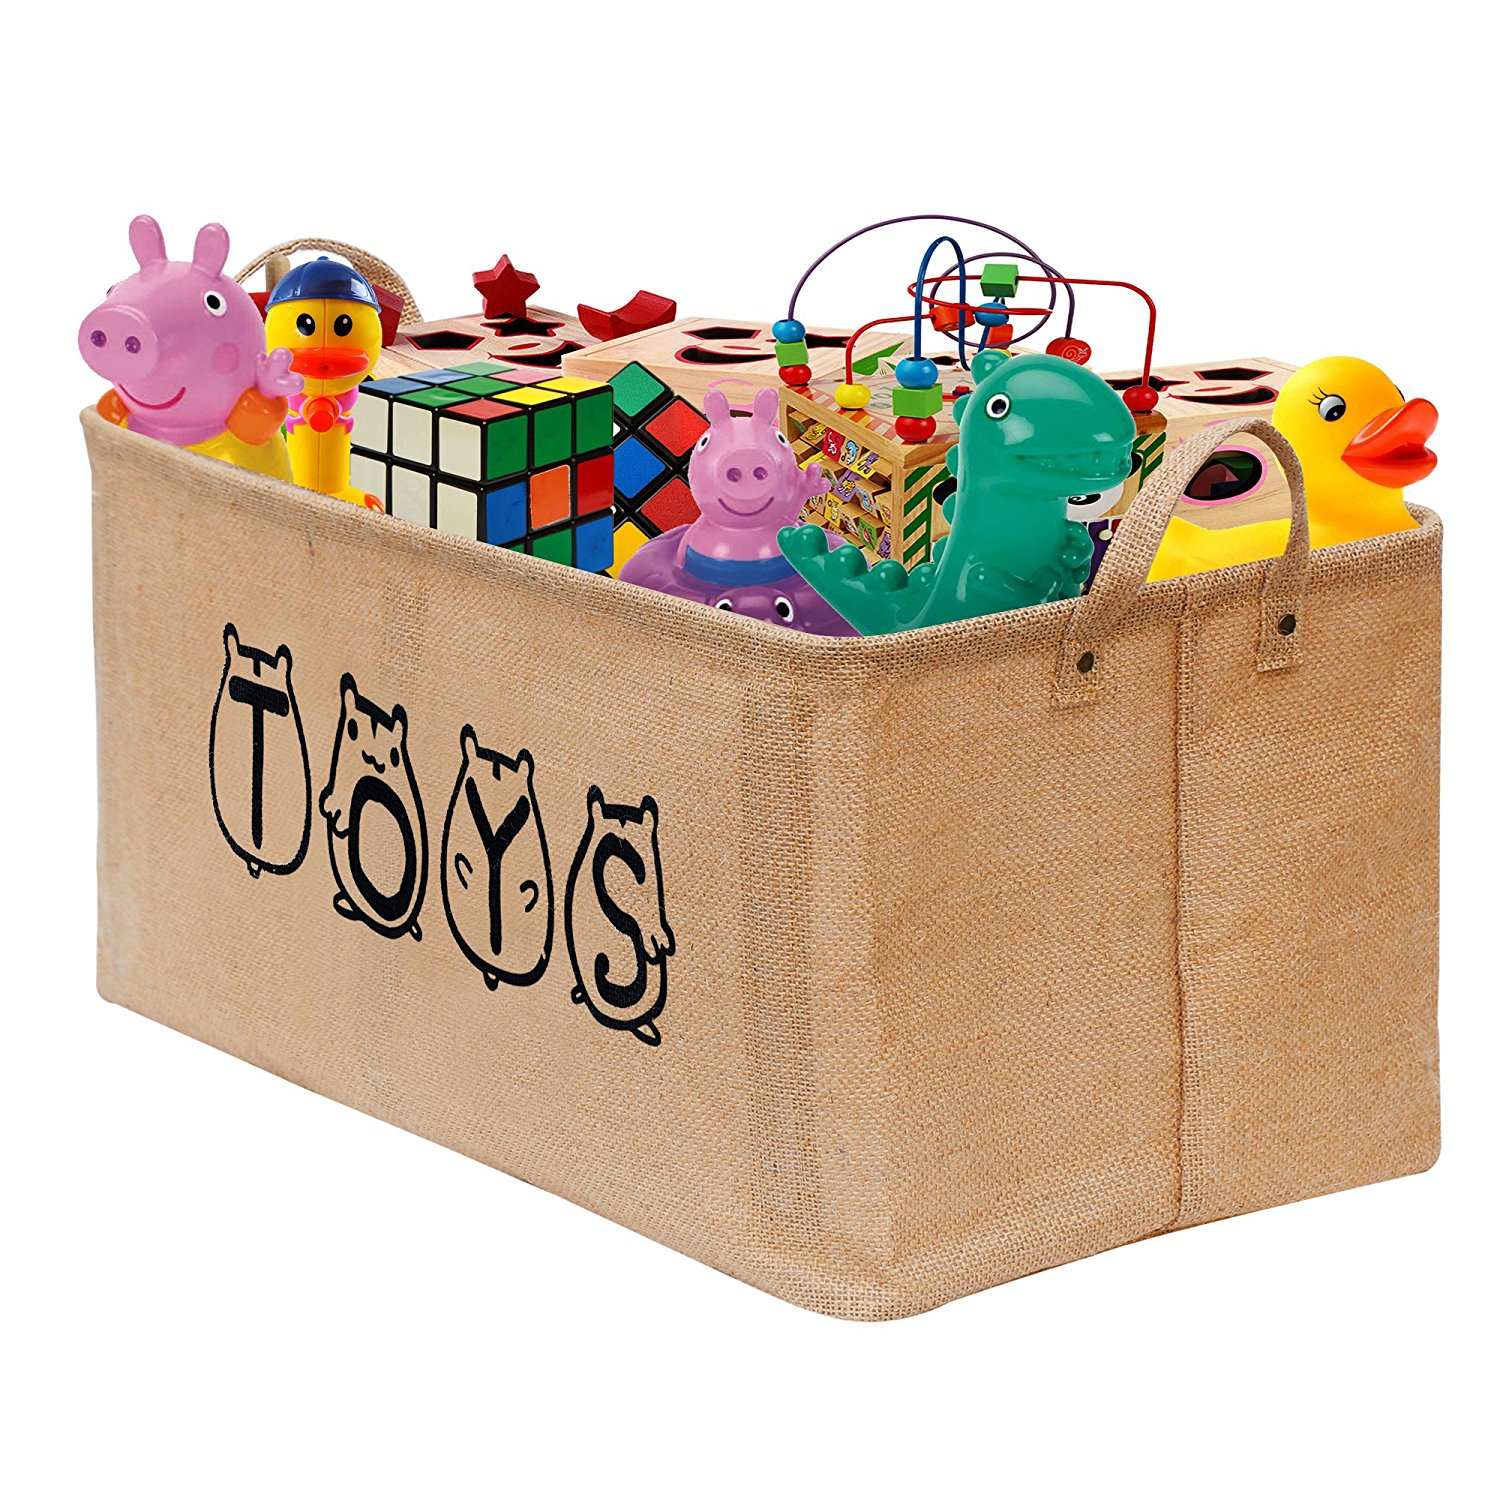 For Girls Fold-able Toy Box With Roll Out Play Mat for Children with Toys